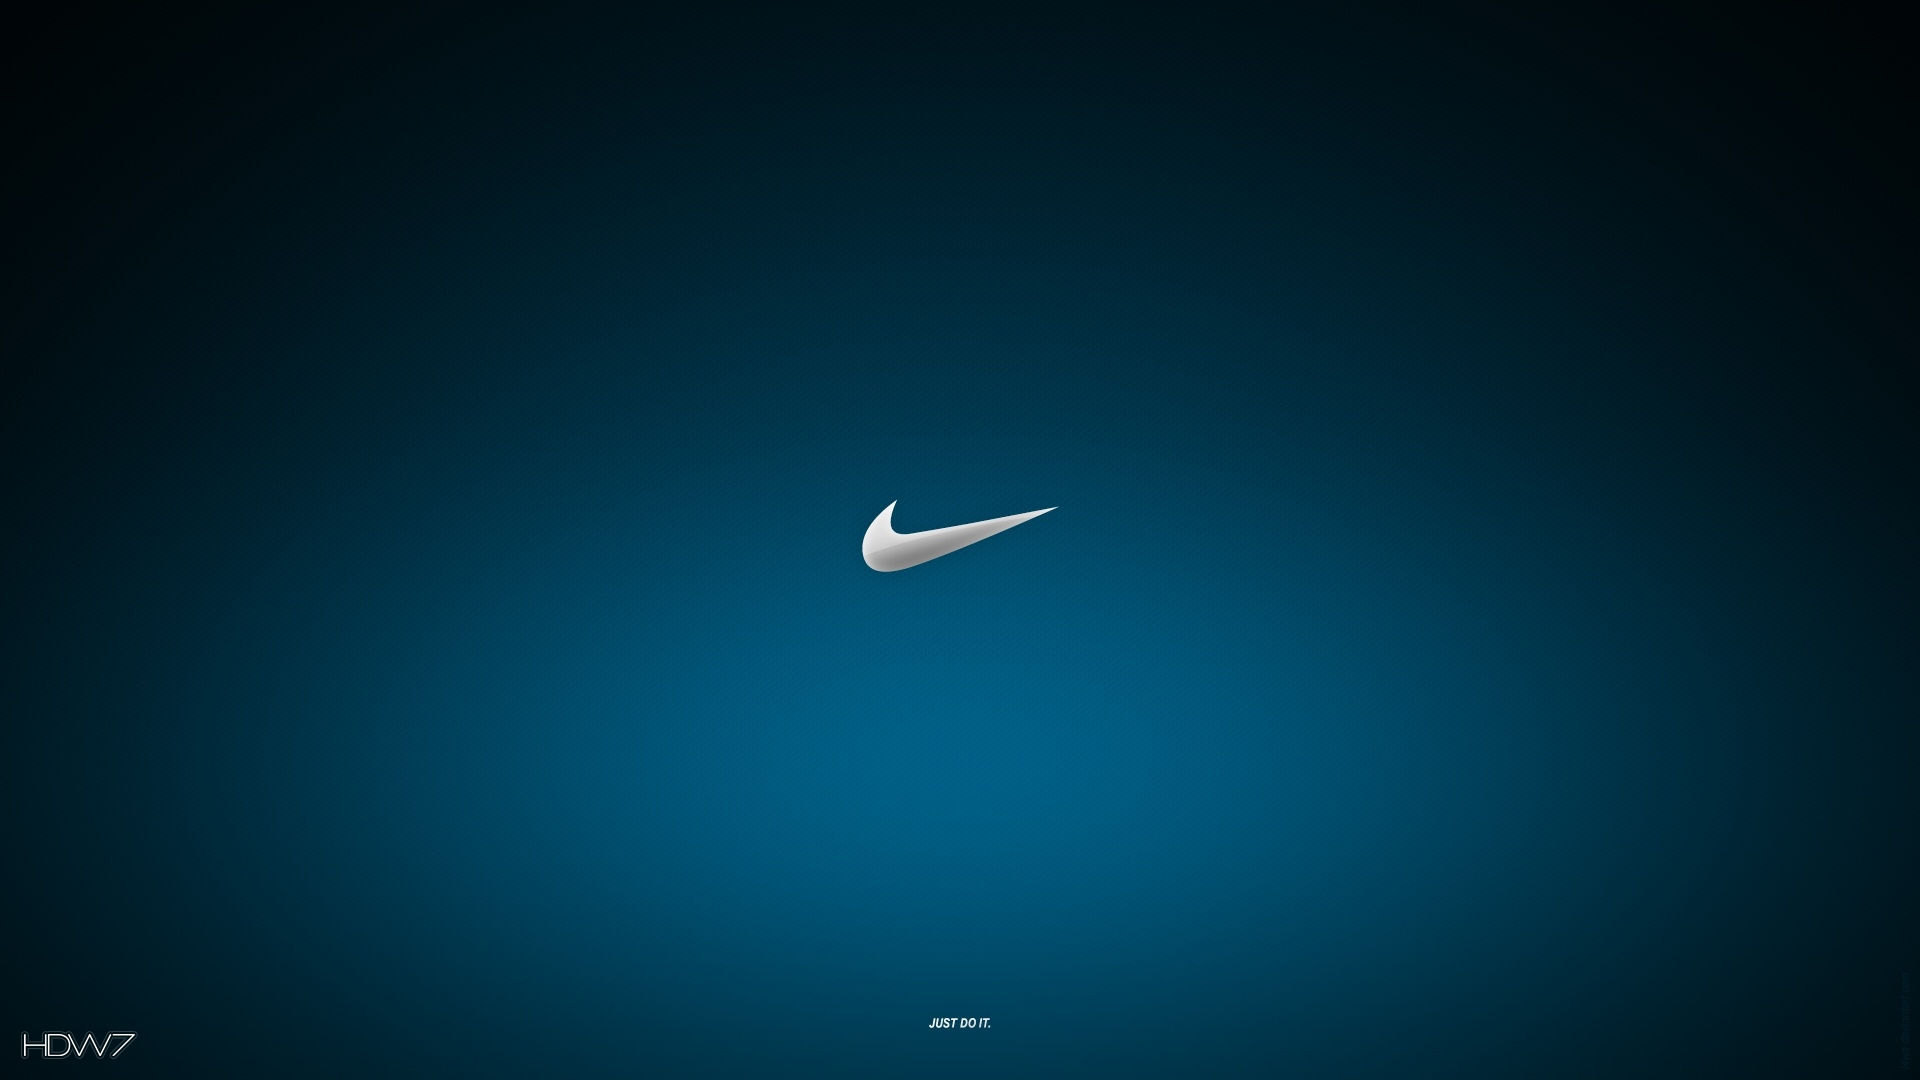 Nike logo just do it wallpaper hd wallpaper gallery 12 nike logo just do it wallpaper voltagebd Choice Image